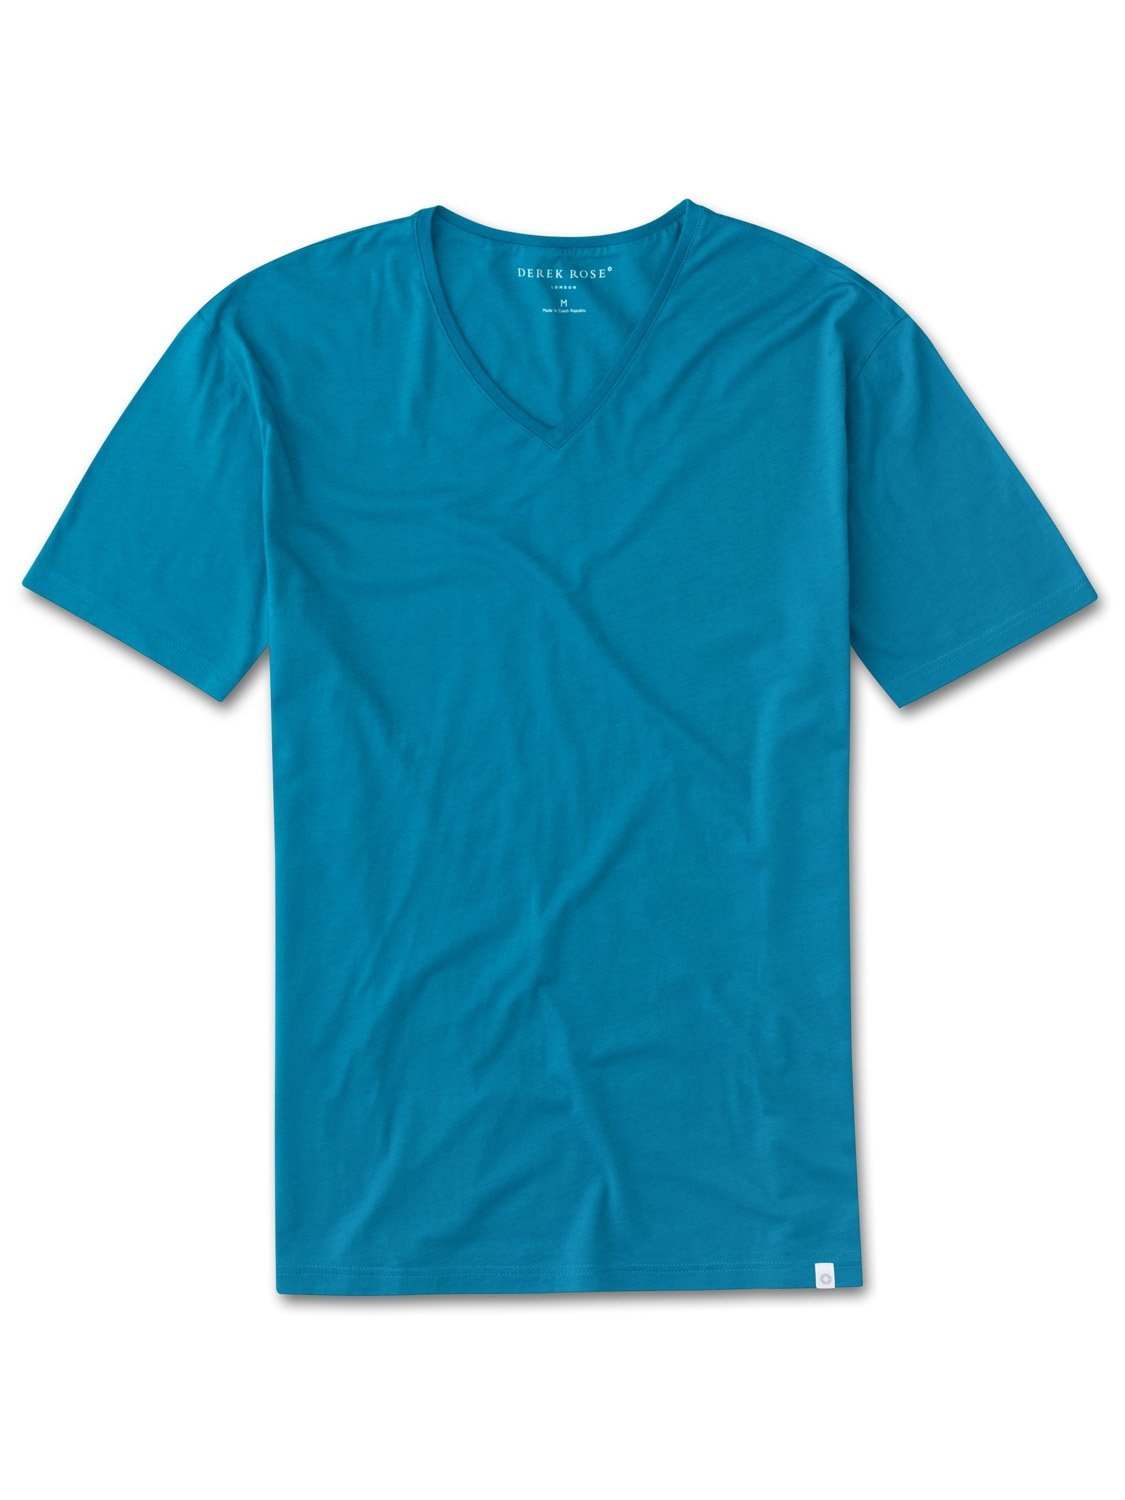 Men's Short Sleeve V-Neck T-Shirt Riley 2 Pima Cotton Teal